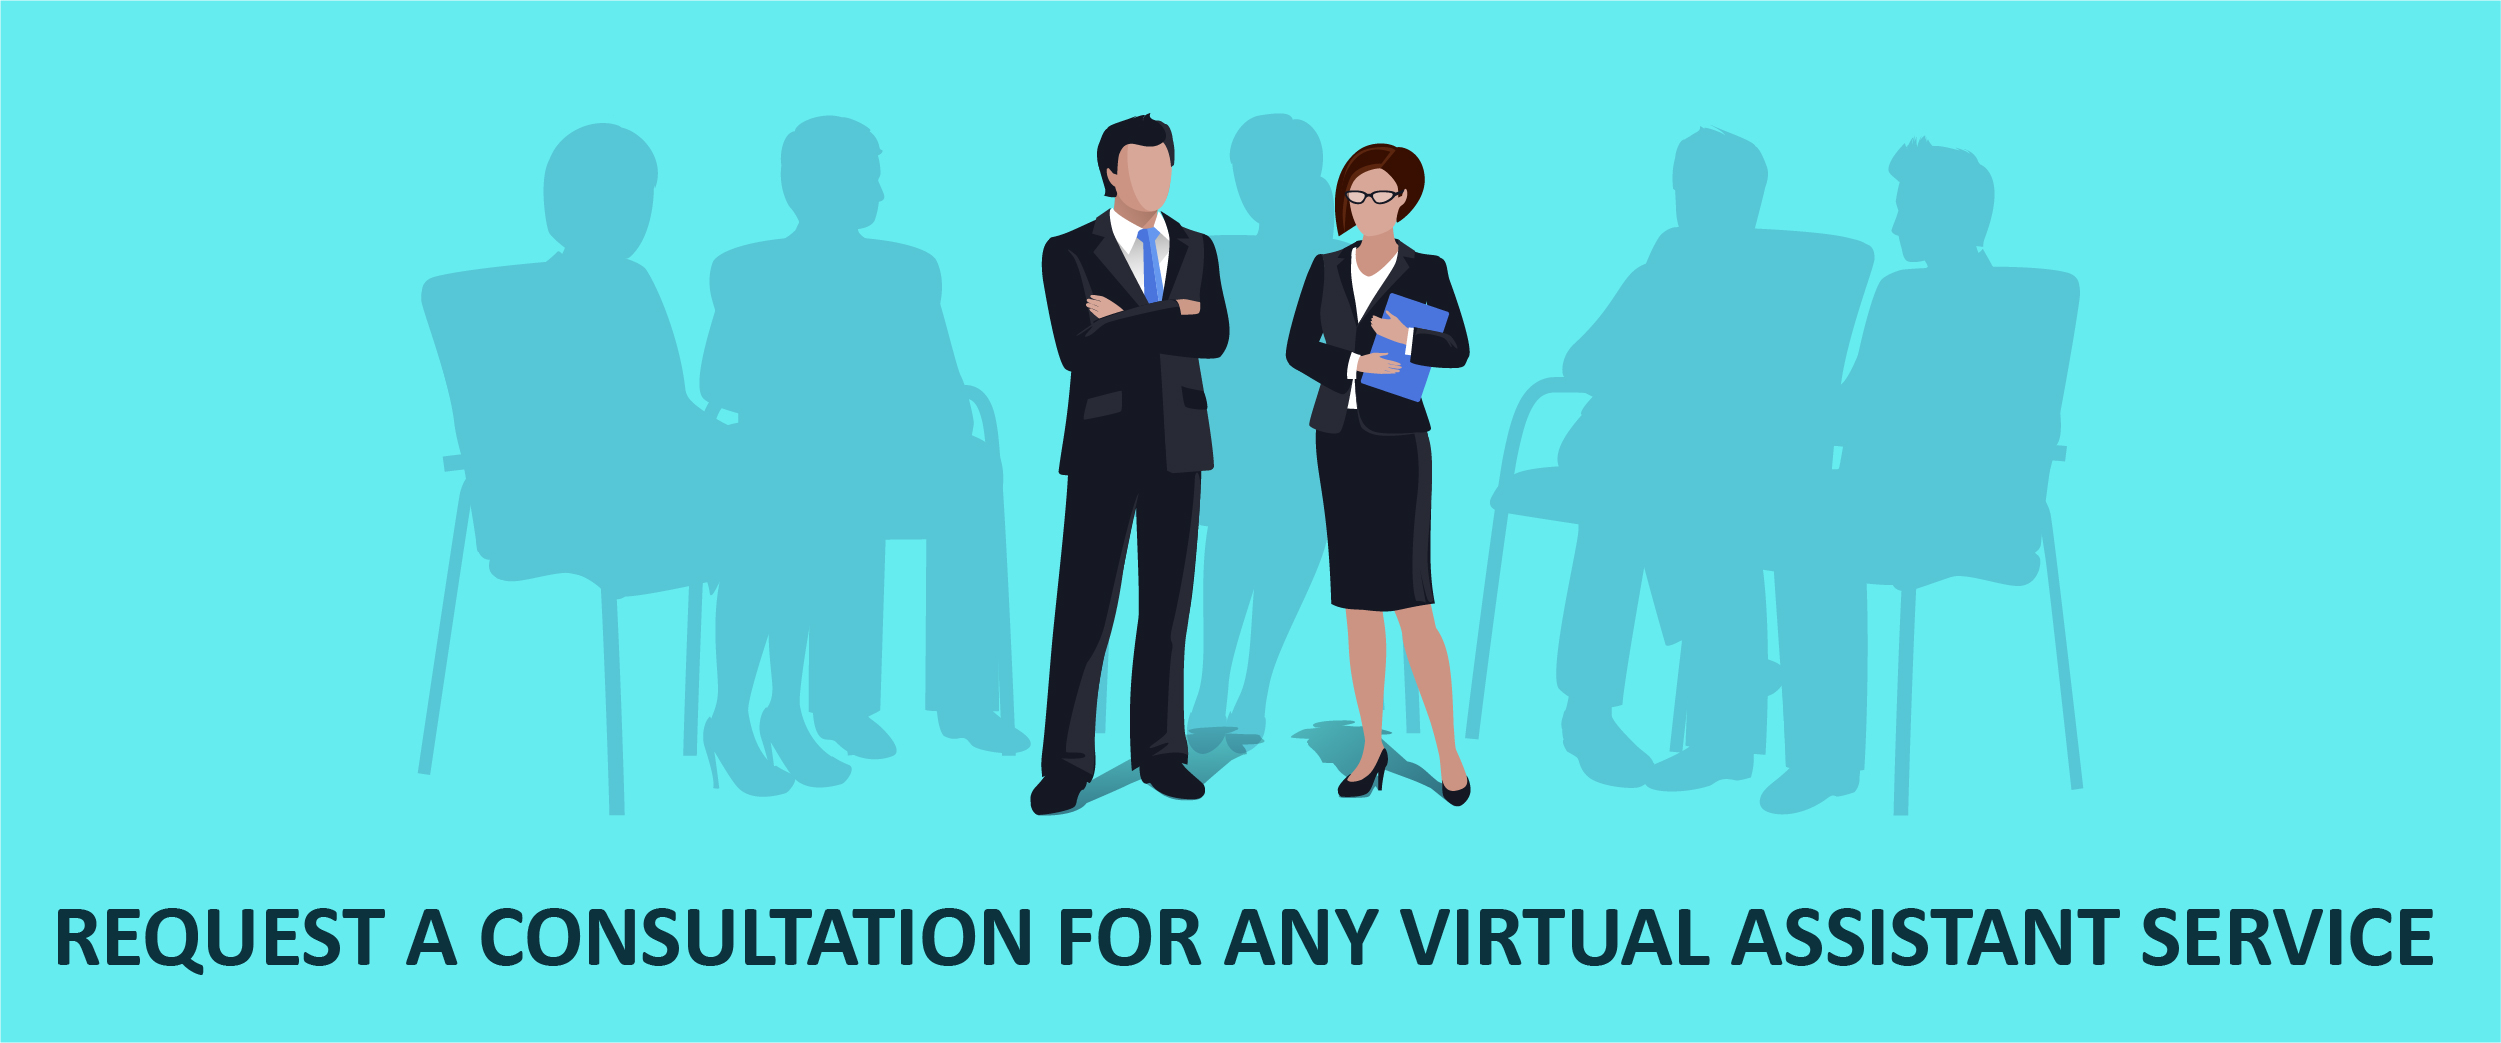 REQUEST A CONSULTATION FOR ANY VIRTUAL ASSISTANT SERVICE